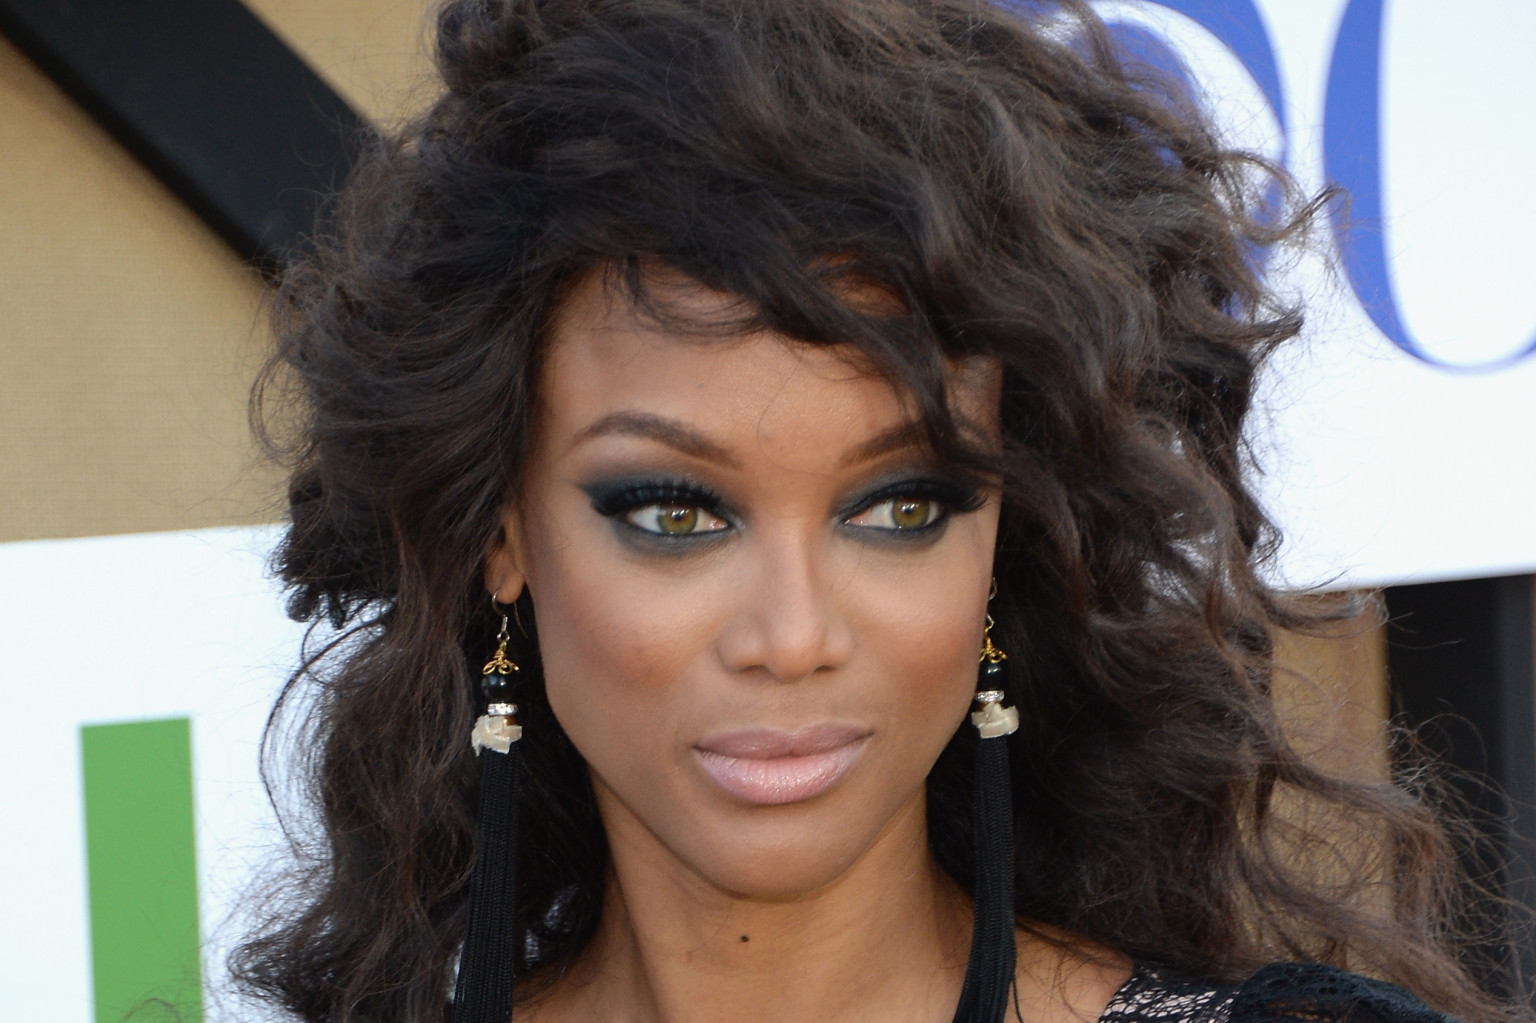 Tyra Banks Pokes Fun At Herself And More In Tweets Of The Week (PHOTOS) | HuffPost